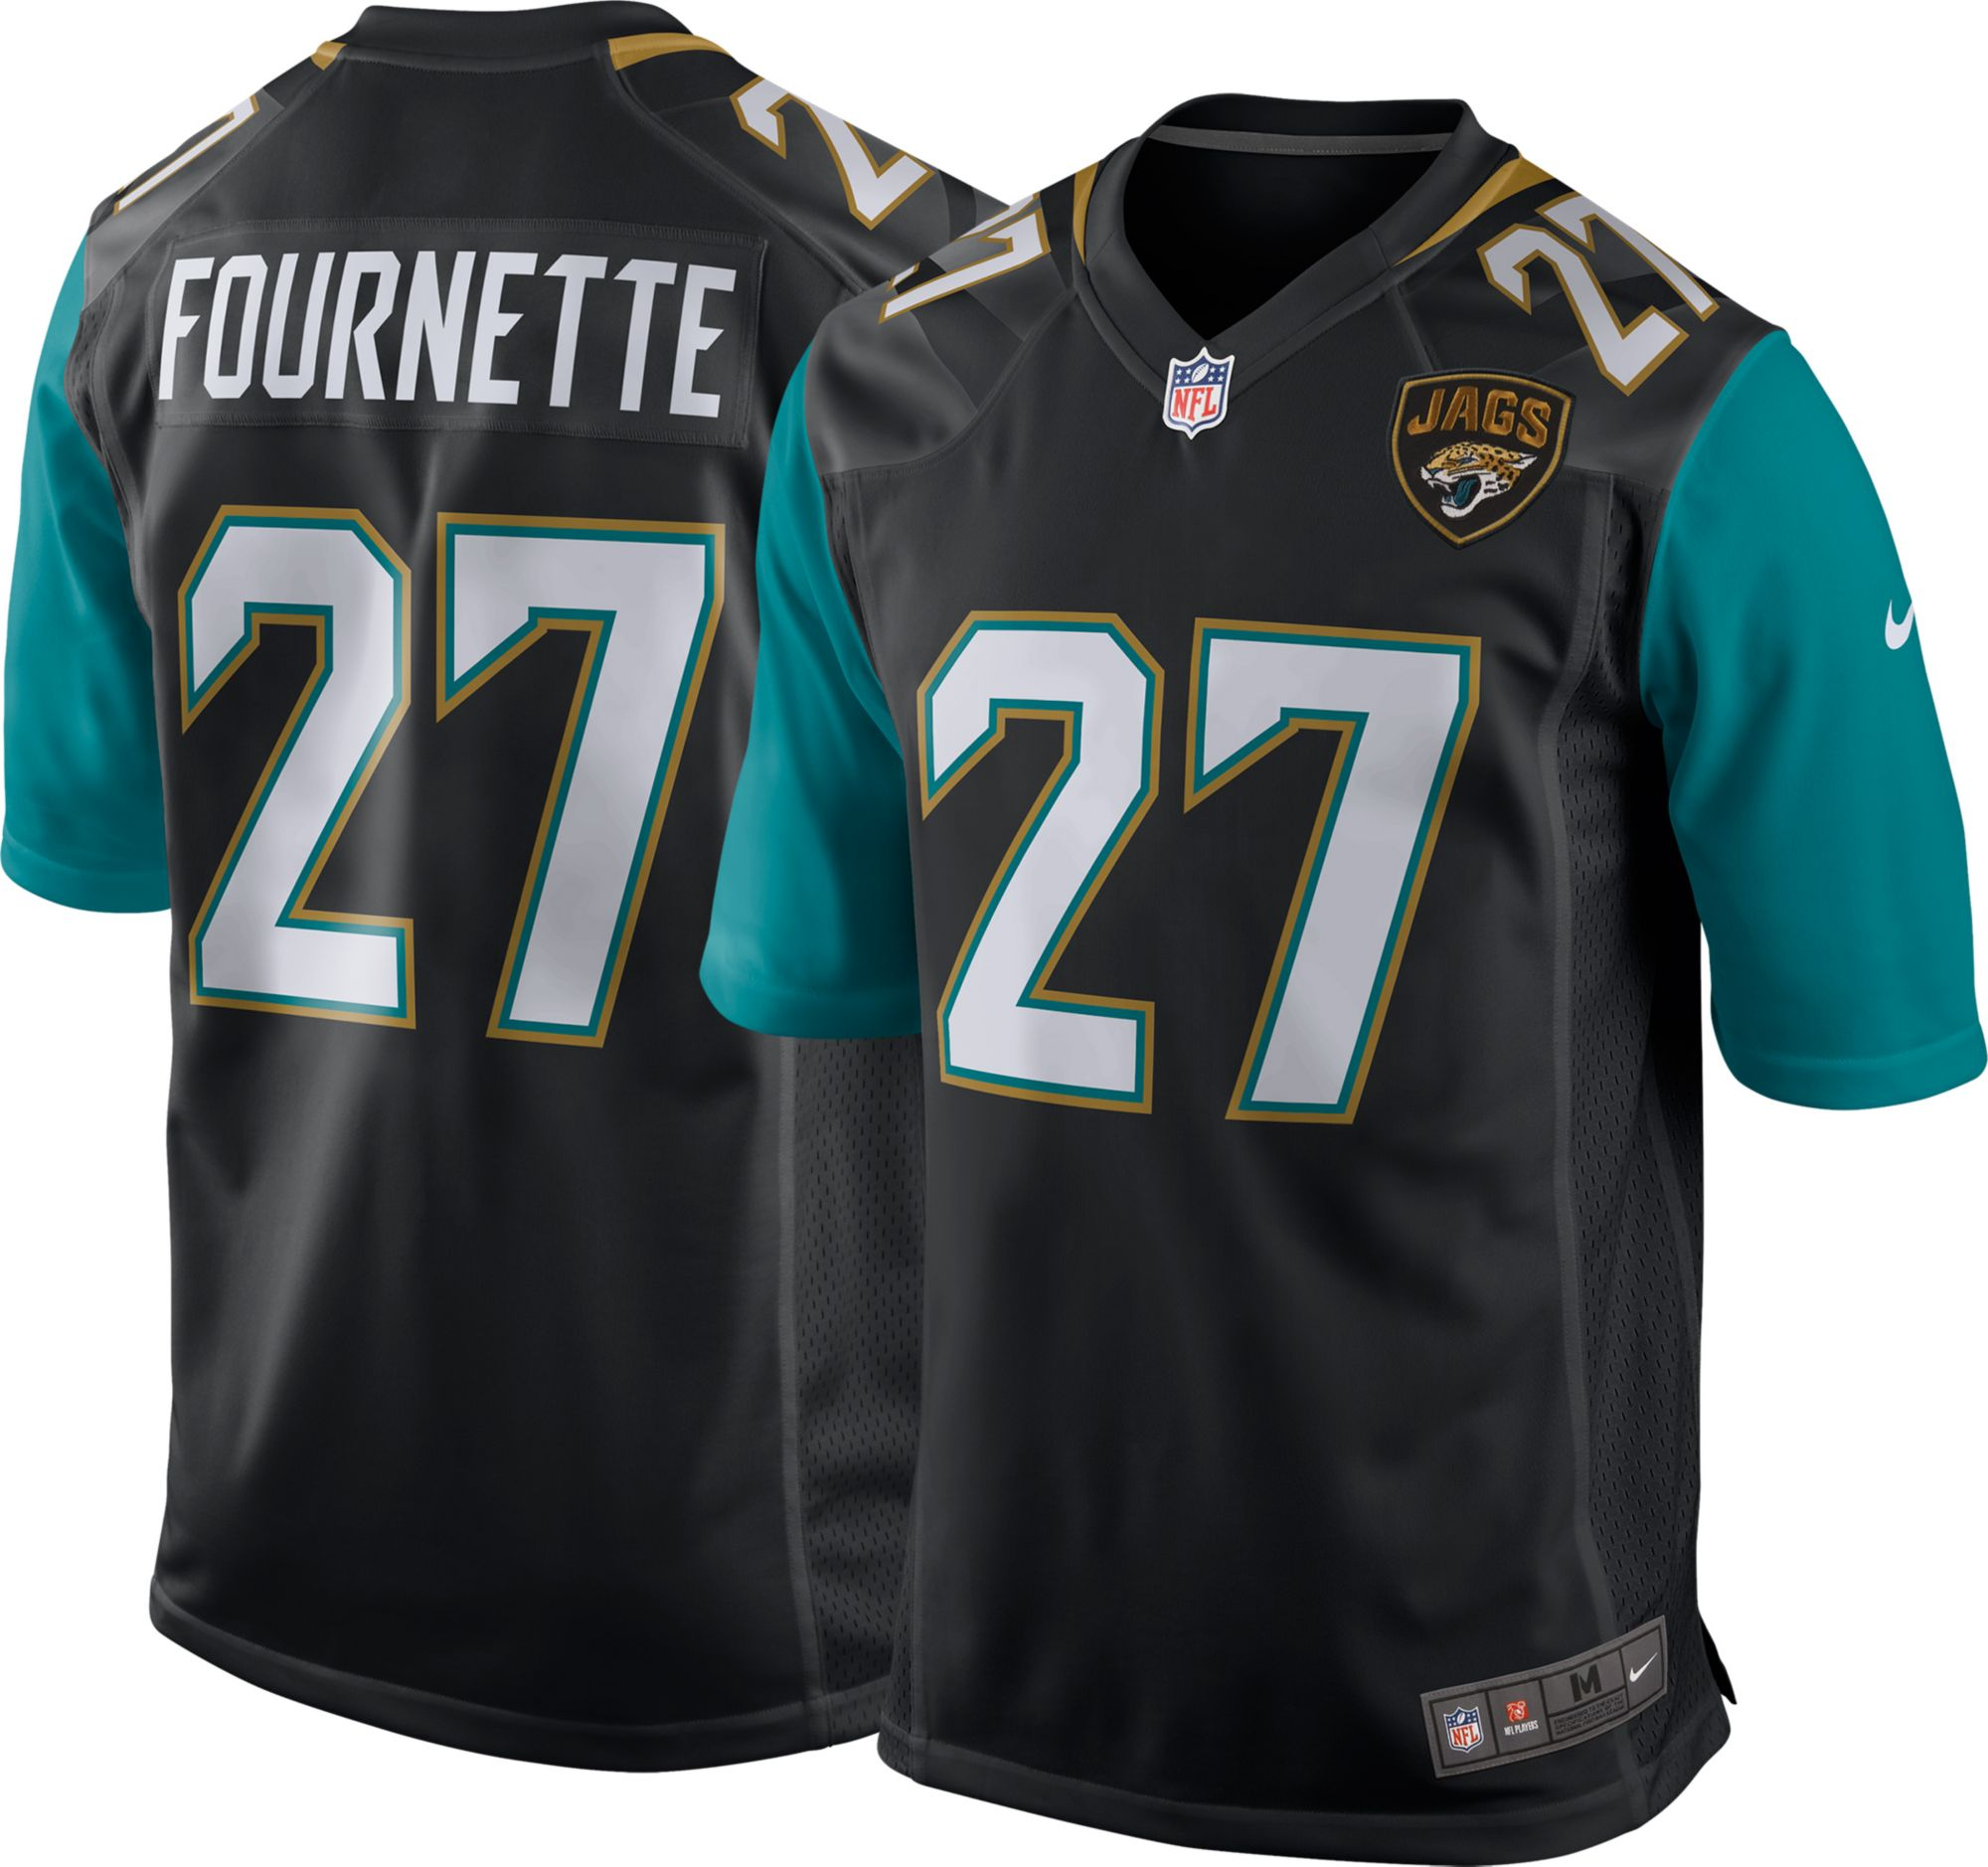 salute jaguar jacksonville youth womens jersey to service limited nike robinson authentic olive gold nfl jaguars allen